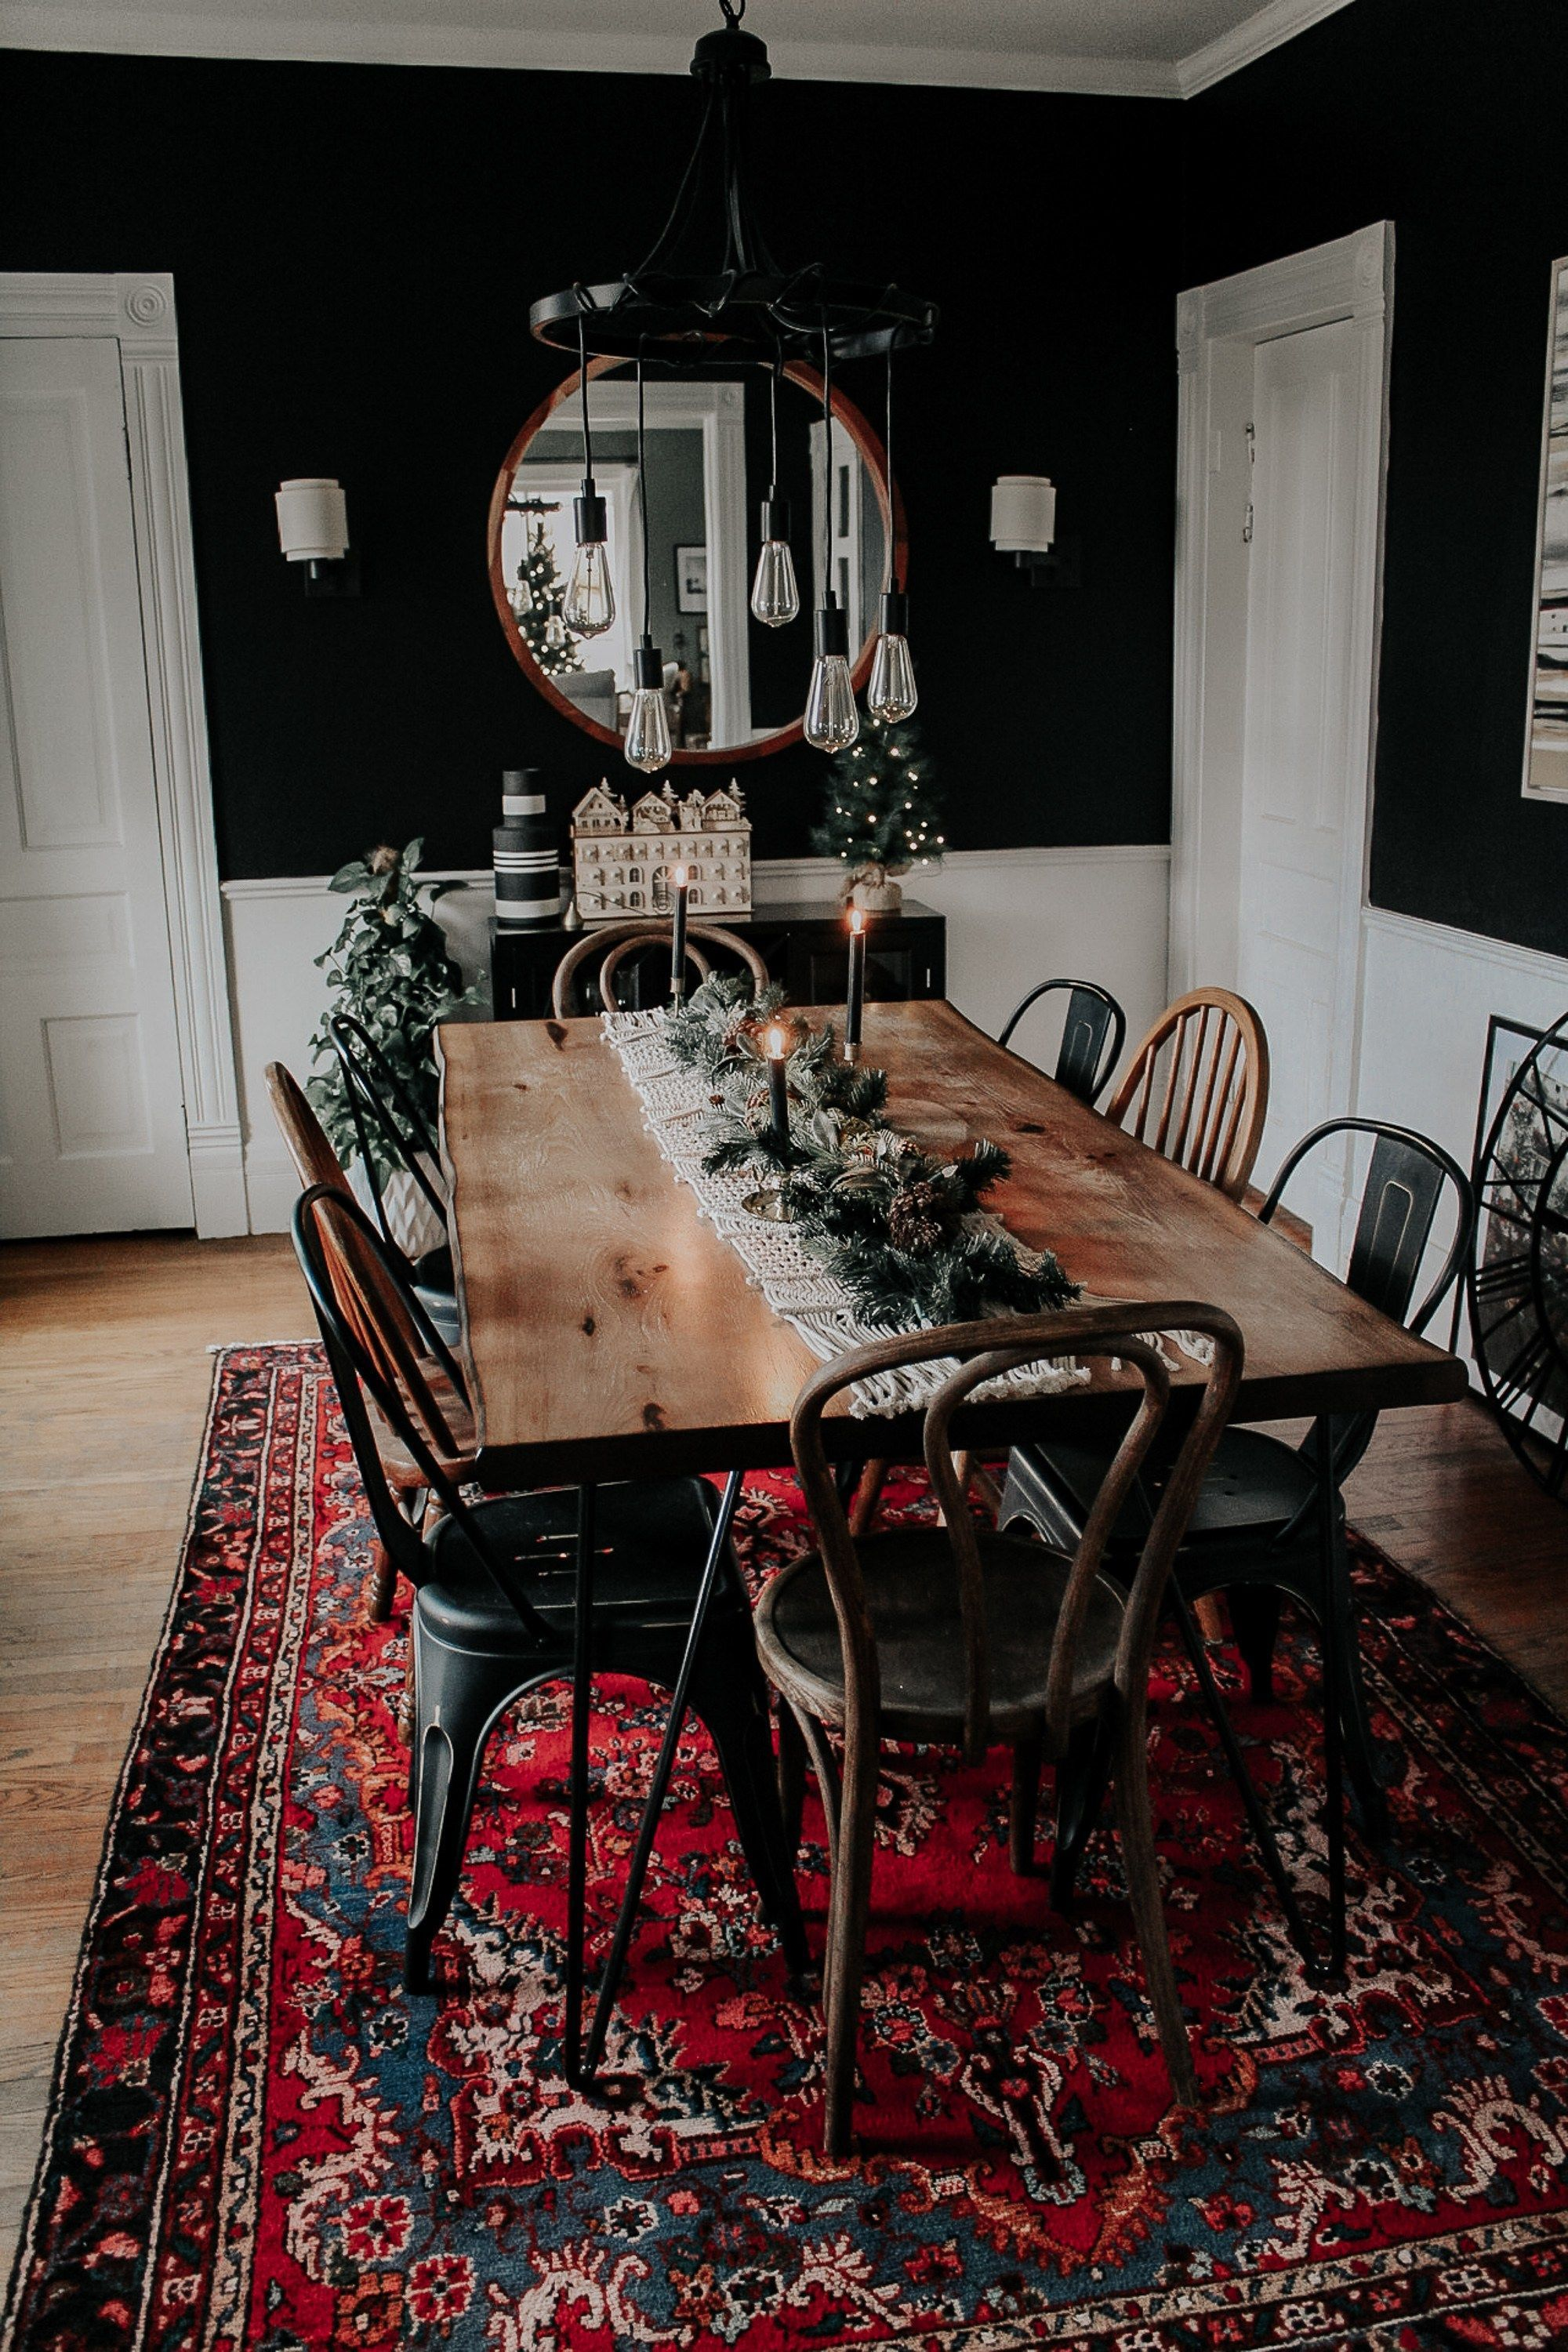 A Modern, Moody, Victorian Home at Christmas - Miranda Schroeder - #Christmas #H... -  A Modern, Moody, Victorian Home at Christmas – Miranda Schroeder – #Christmas #Home #Miranda #m - #Christmas #cuteHomeDecor #home #HomeDecoraccessories #HomeDecorchristmas #HomeDecorclassy #HomeDecoreclectic #HomeDecorgrey #HomeDecortips #Miranda #modern #Moody #Schroeder #Victorian